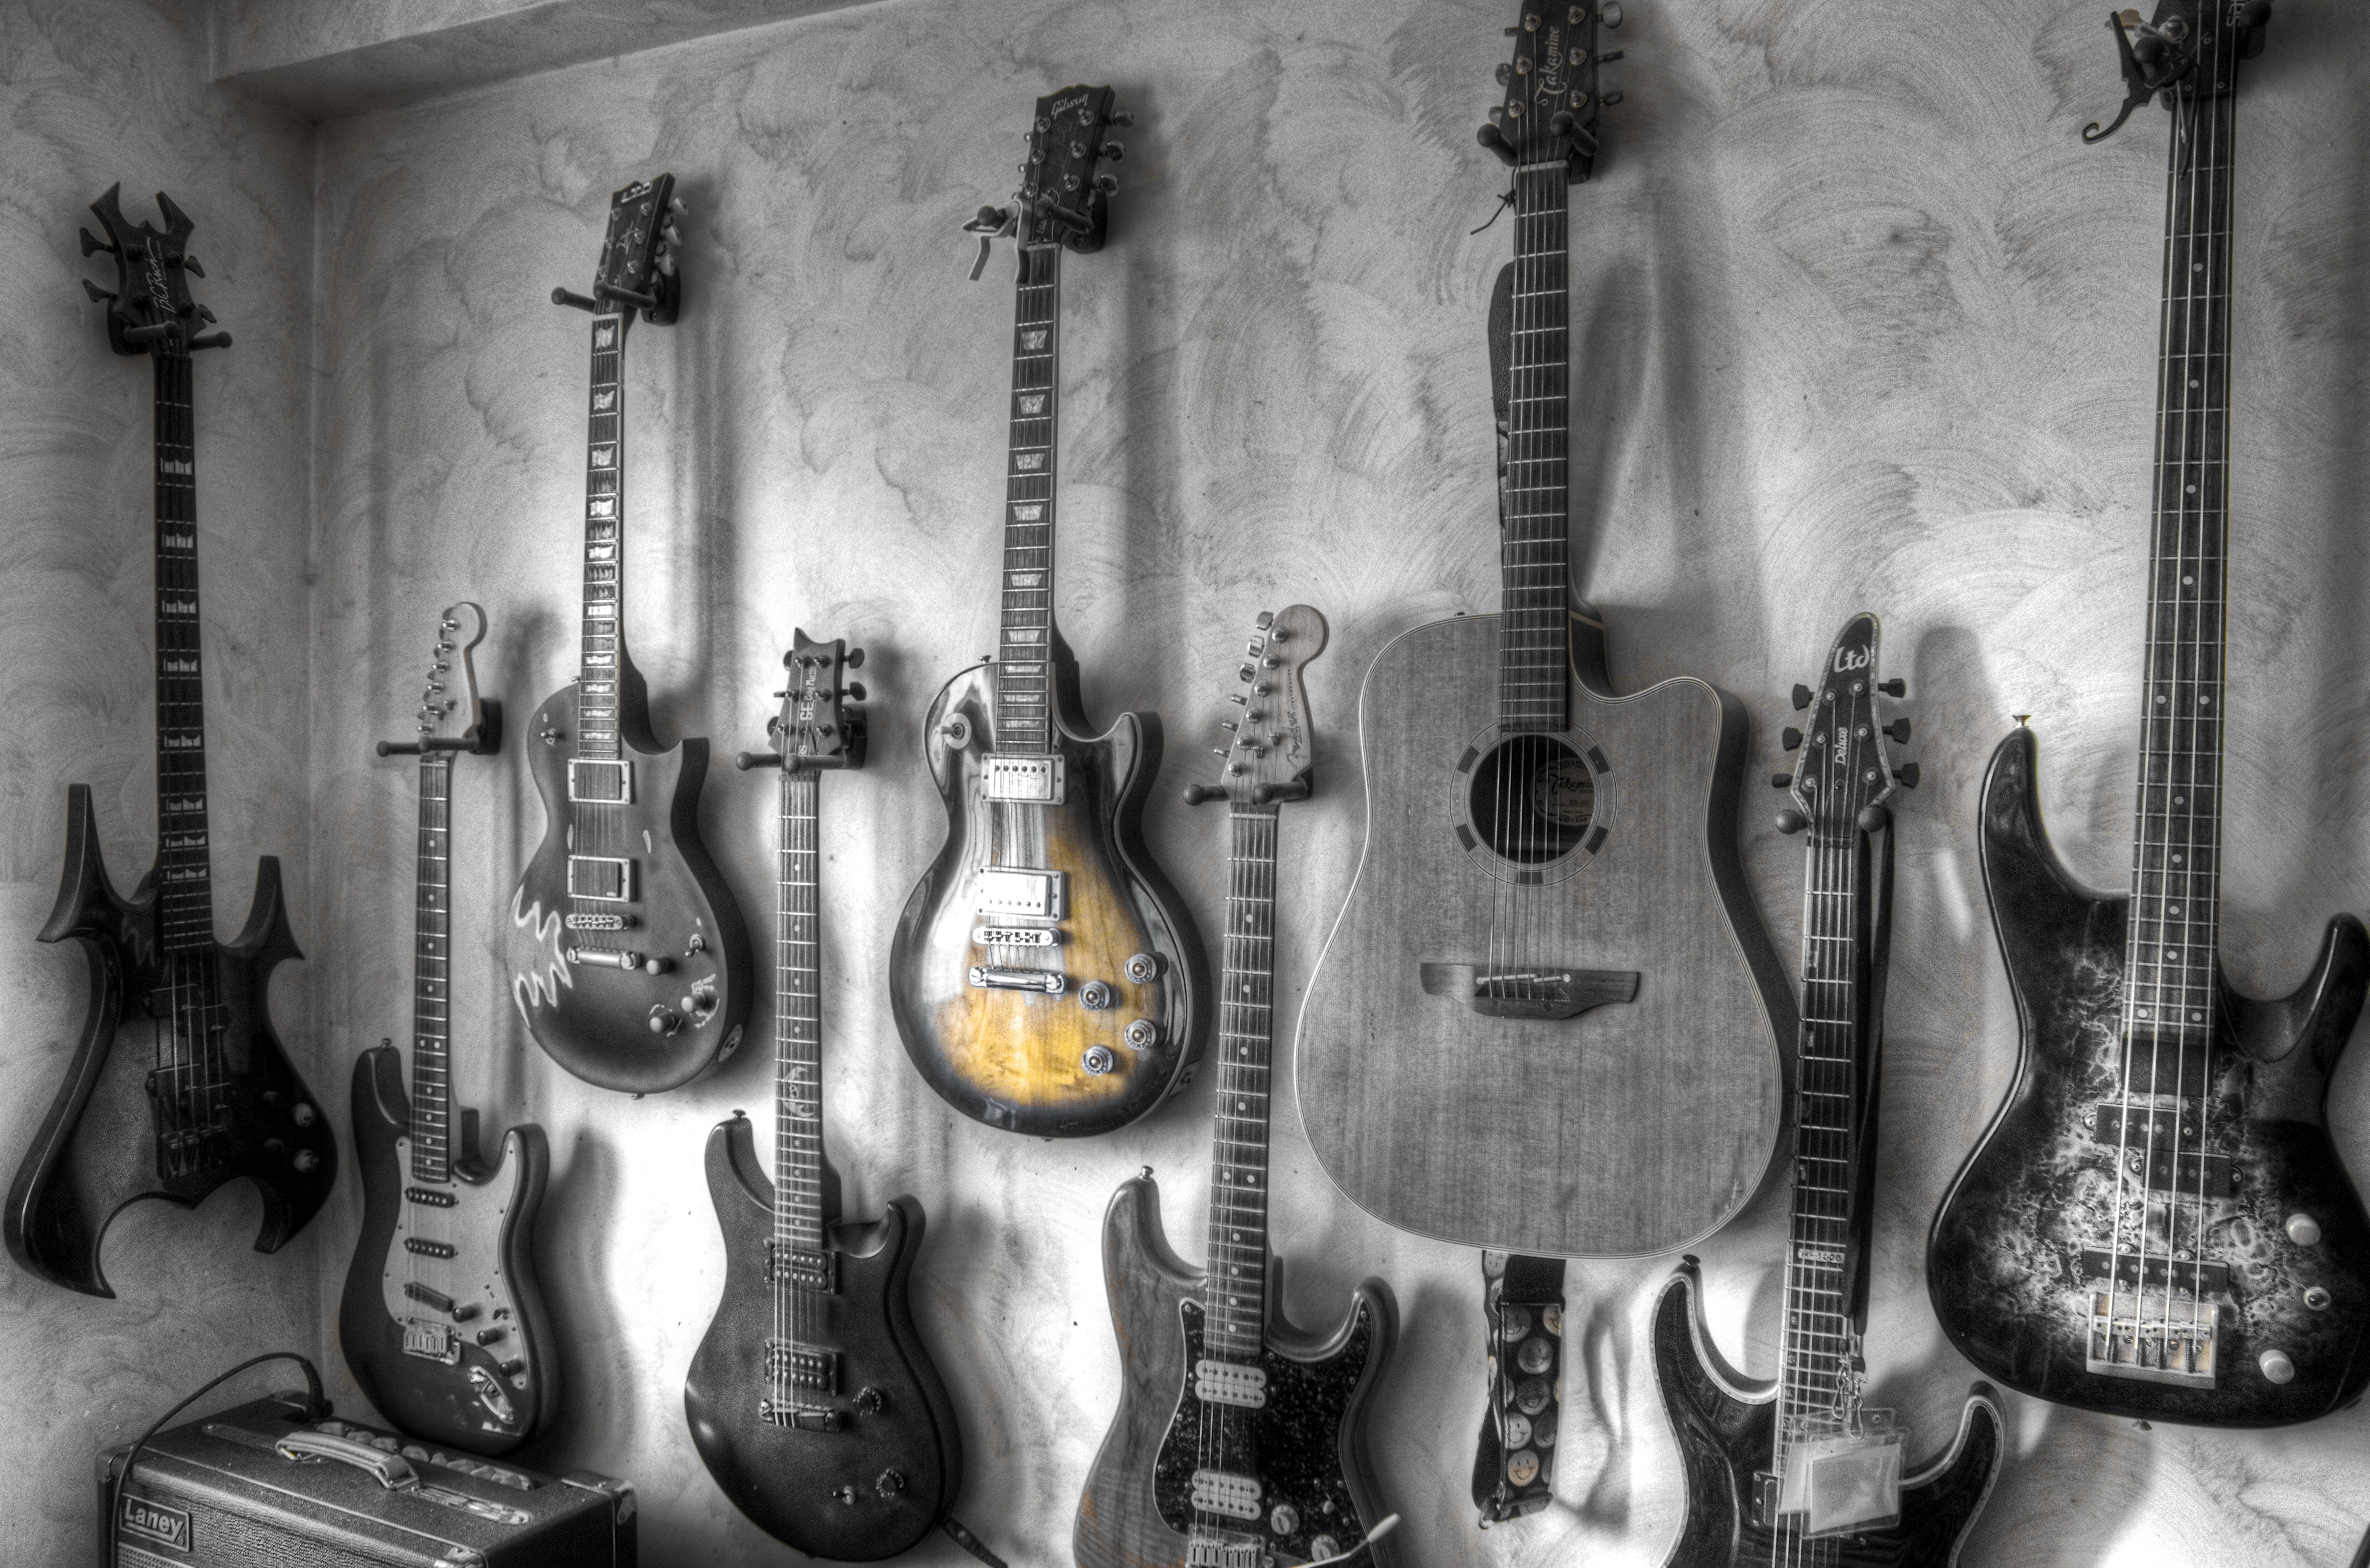 Guitar 4k Ultra HD Wallpaper | Background Image | 4911x3249 | ID:748579 - Wallpaper Abyss